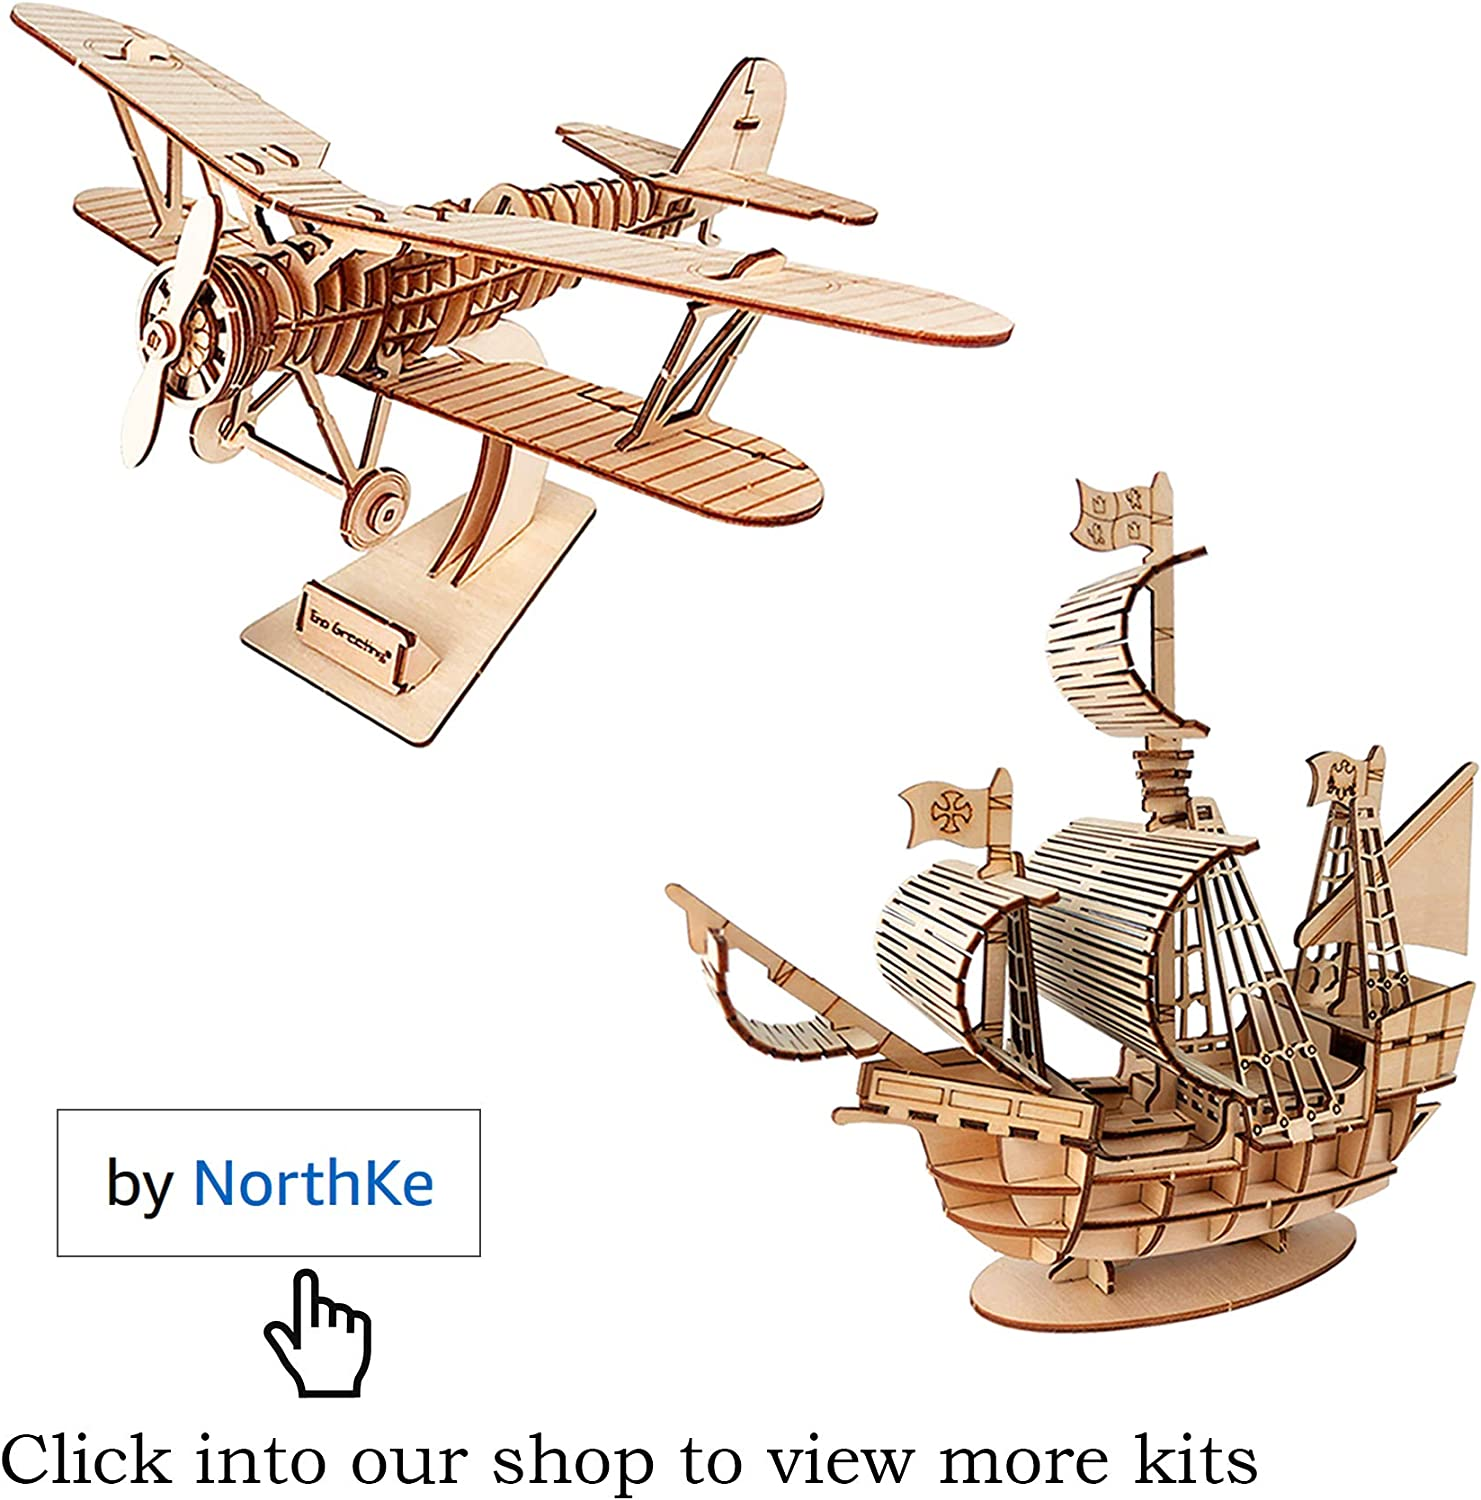 DIY Model Craft Toys Gifts for Kids Boys Girls Adults and Teens NorthKe 3D Wooden Puzzle Kits Biplane and Model Car